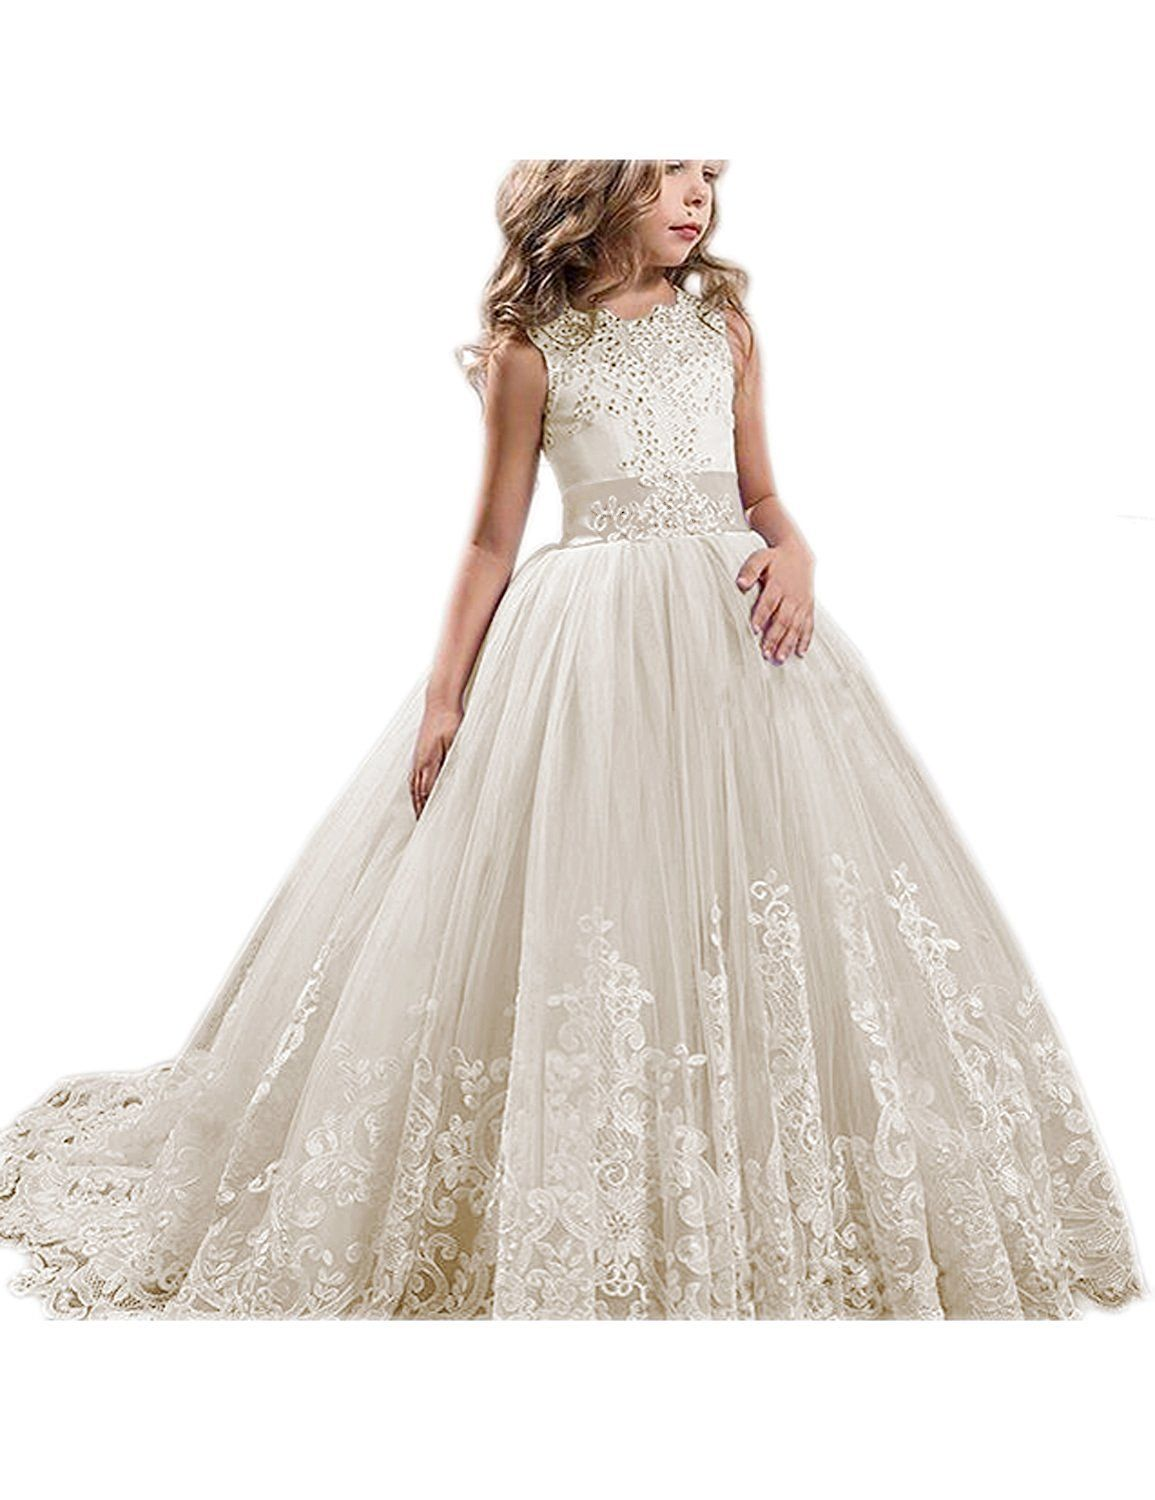 Princess ivory long girls pageant dresses kids prom puffy tulle ball